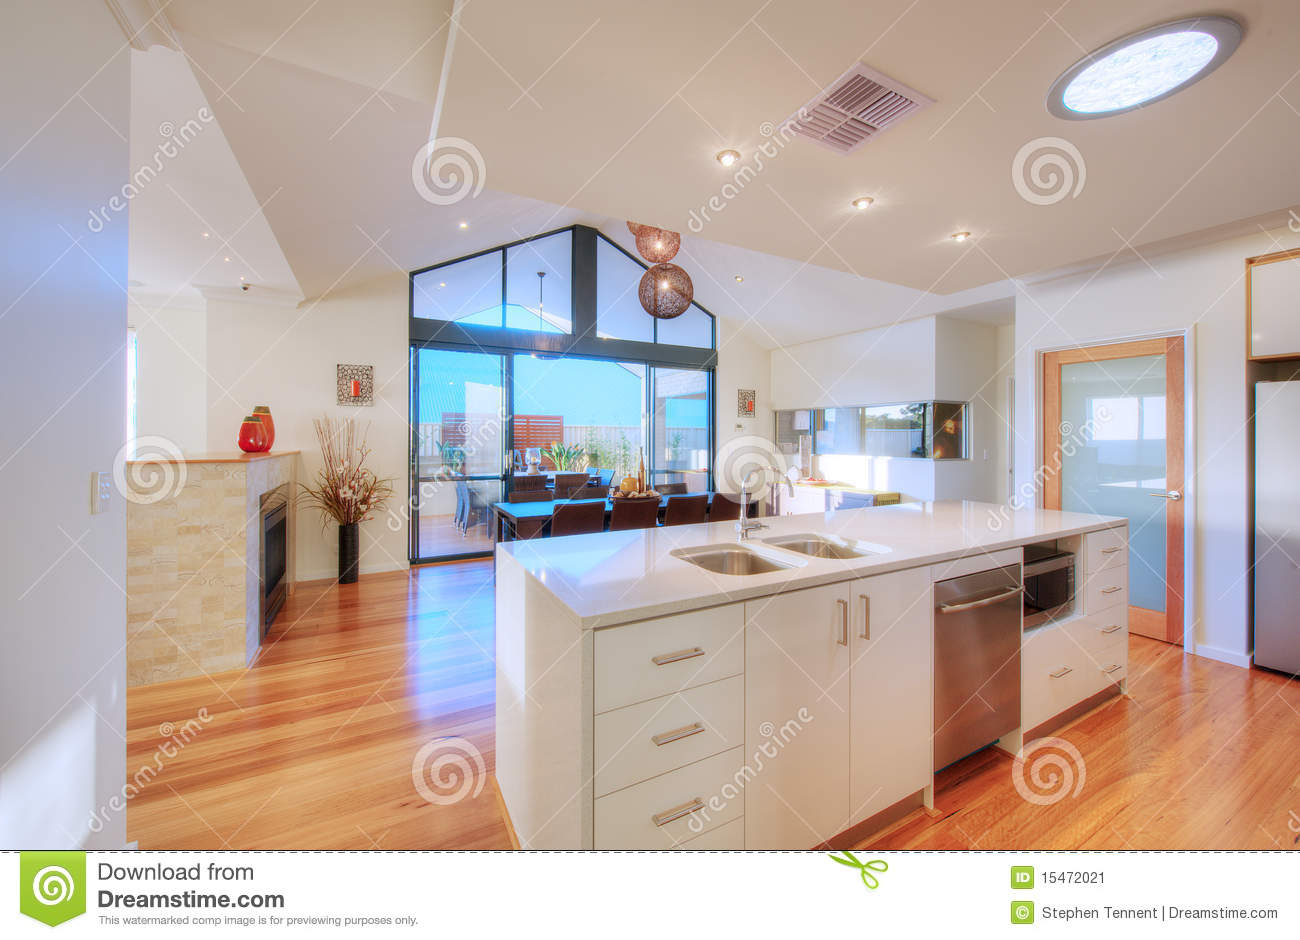 Cuisine open plan moderne luxueuse image stock   image: 15472021